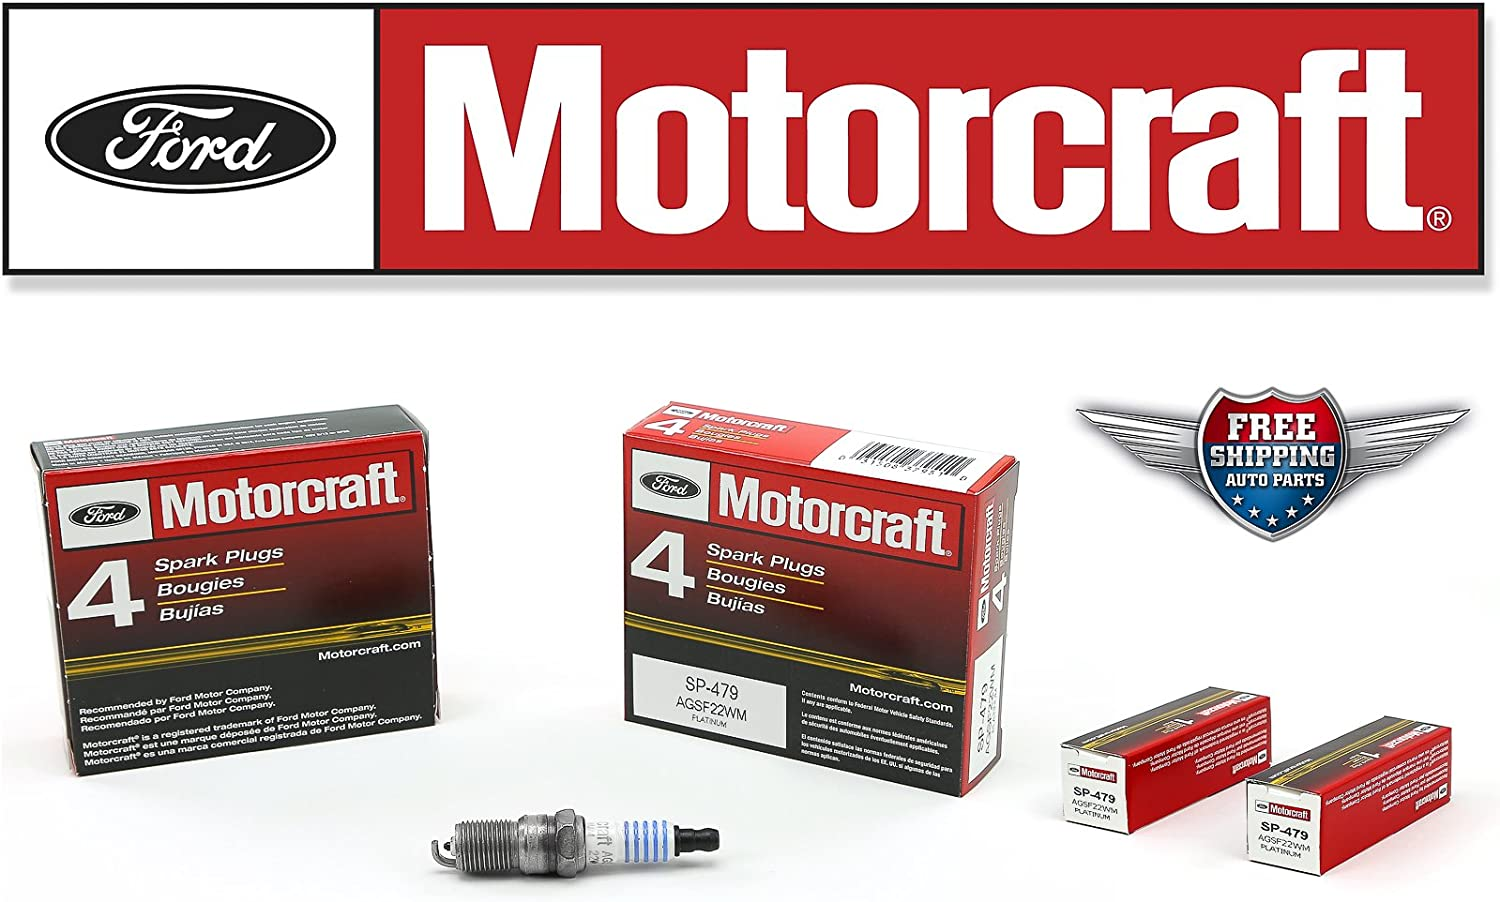 Set of 4 Genuine Ford Motorcraft Platinum Spark Plugs SP-479 AGSF22WM Free Ship